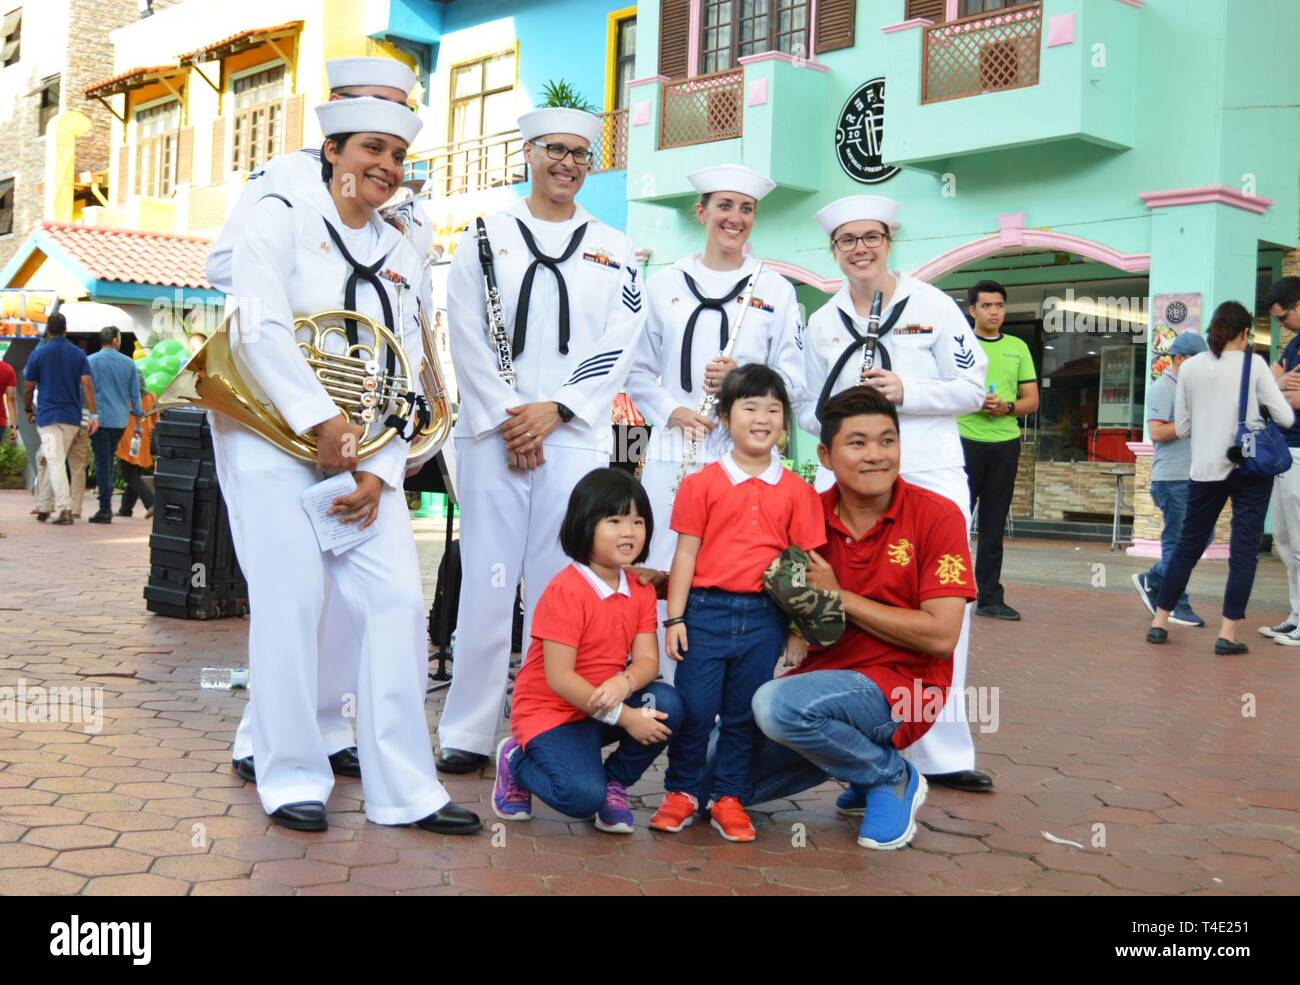 LANGKAWI, Malaysia (March 28, 2019) US 7th Fleet Band Performs at the Langkawi Sky Bridge as part of the Langkawi International Martime and Aerospace Exhibition (LIMA) 2019. 7th Fleet Band is embarked on the USS Blue Ridge (LCC 19)  and are actively working to foster relationships with allies and partners in the Indo-Pacific region. Stock Photo